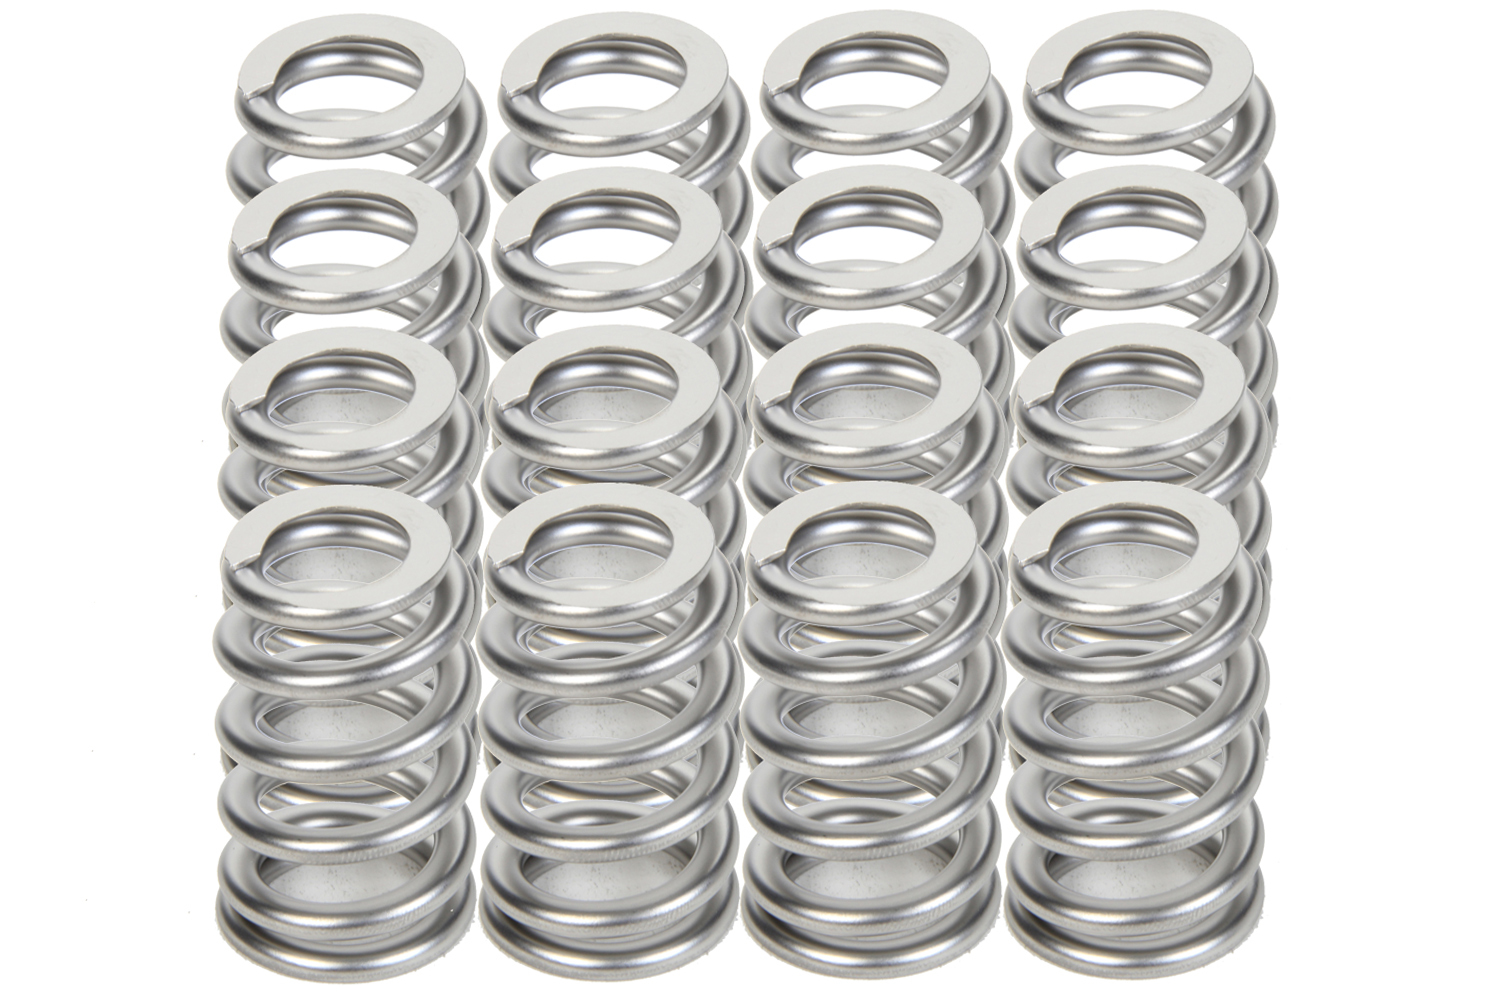 PAC Racing Springs PAC-1223X Valve Spring, 1200 Series, Ovate Beehive Spring, 324 lb/in Spring Rate, 0.900 in Coil Bind, 1.105 in ID, Set of 16